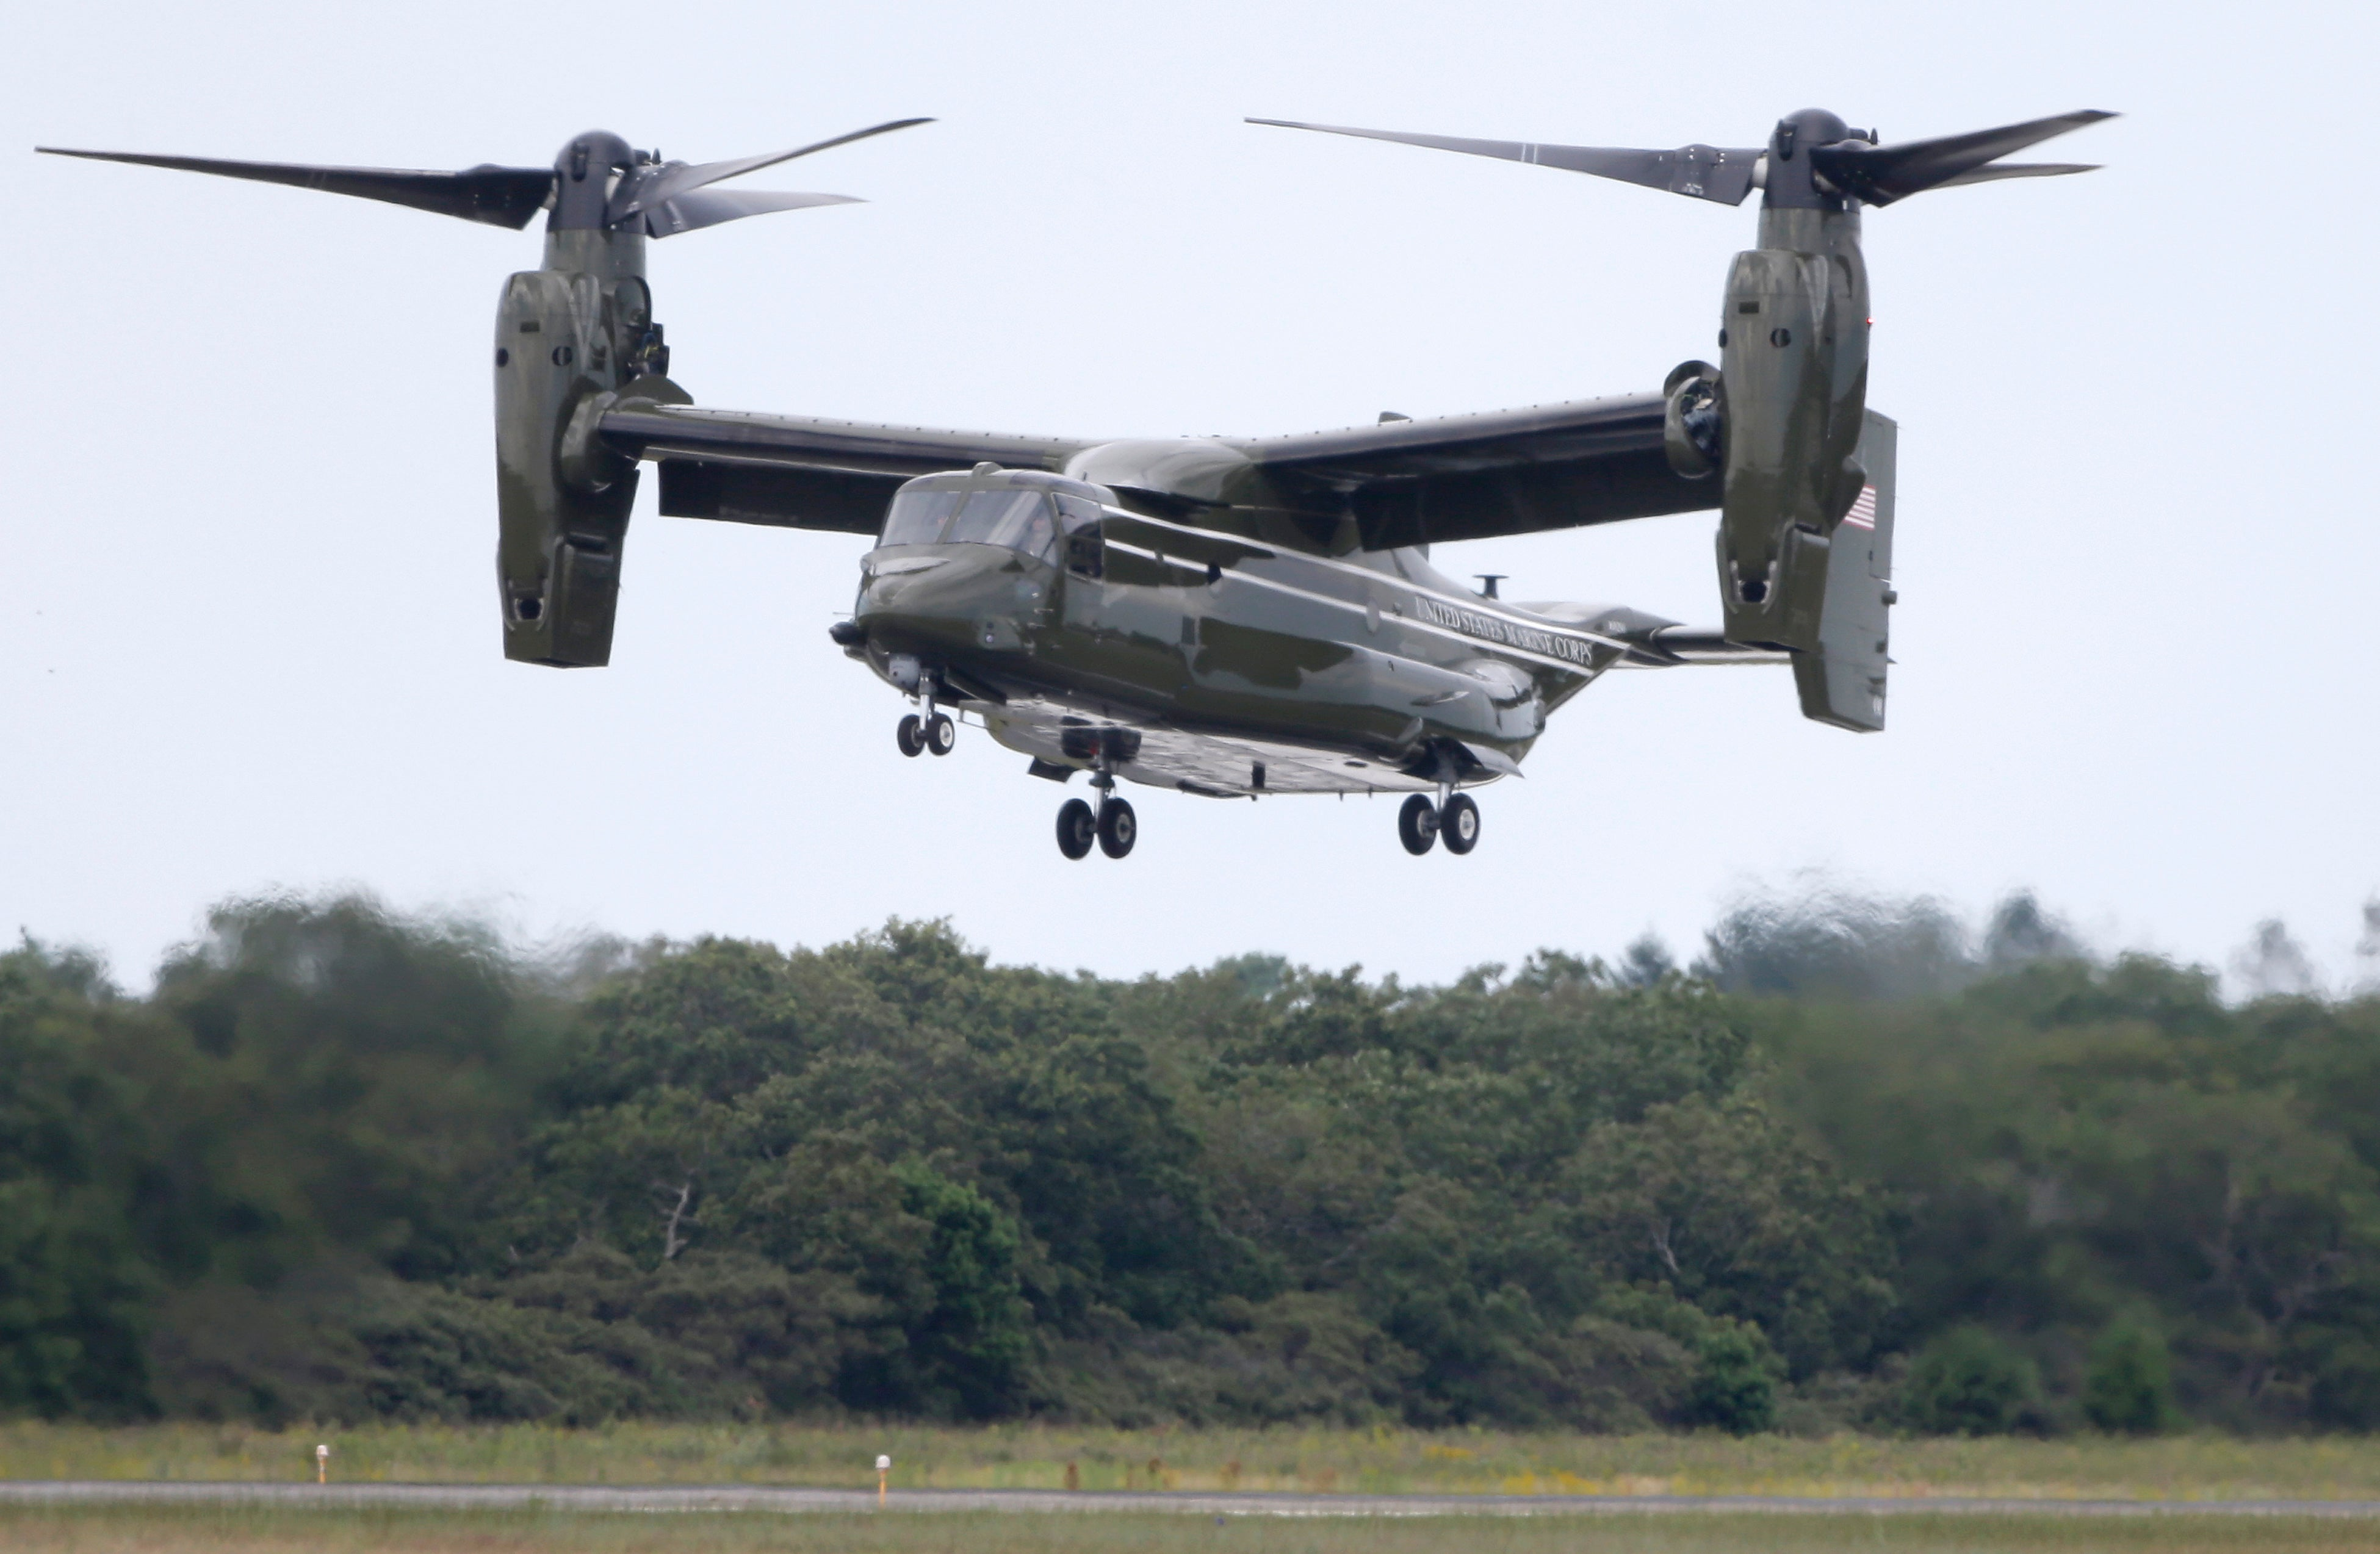 The President Gets a Personal Osprey He's Not Allowed to Use